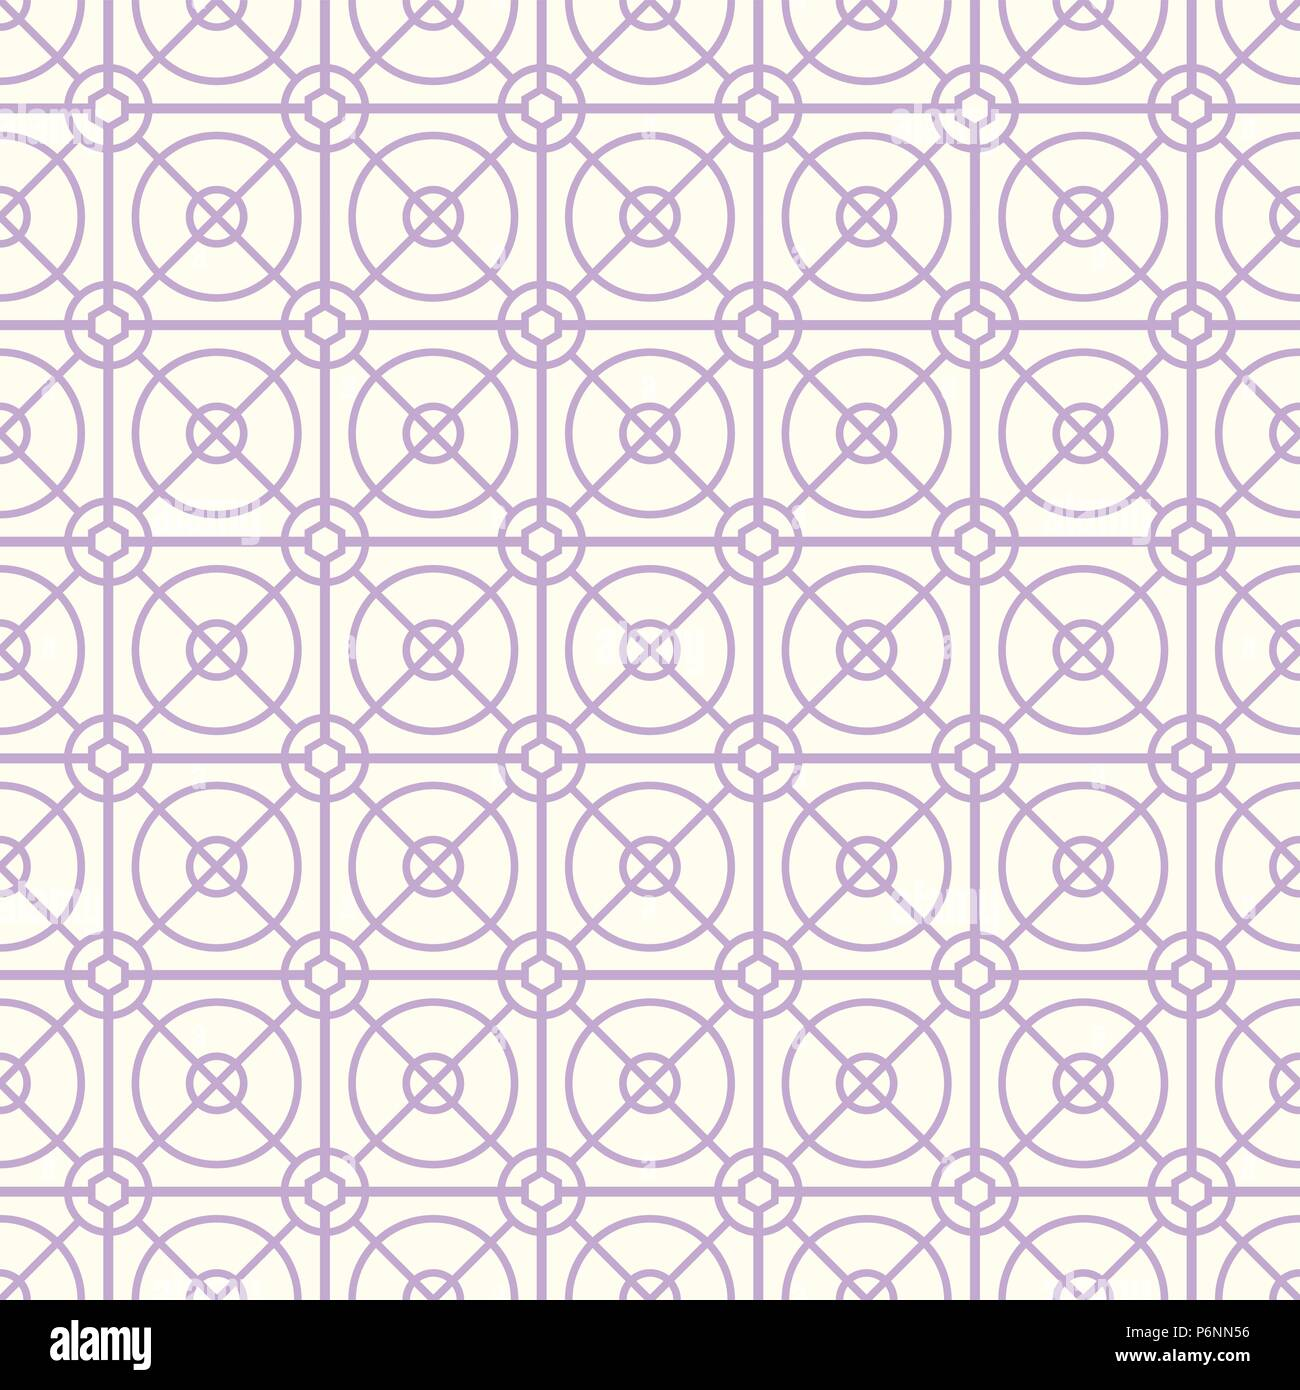 Violet Abstract circle and square and hexagon seamless pattern on pastel background. Modern line and circle pattern for graphic design. - Stock Vector